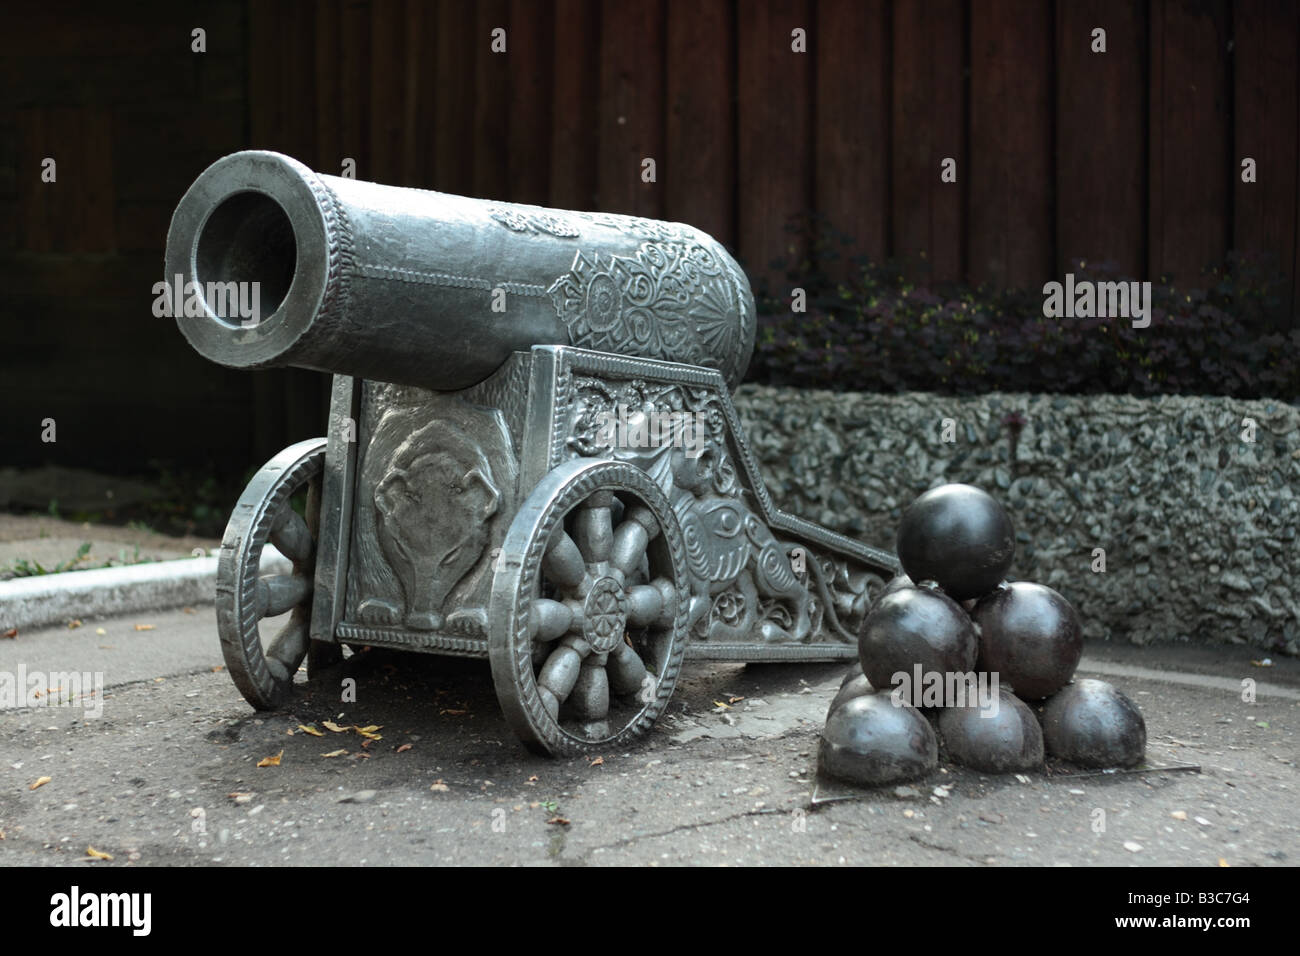 Old cannon at armour exibition in Russia - Stock Image